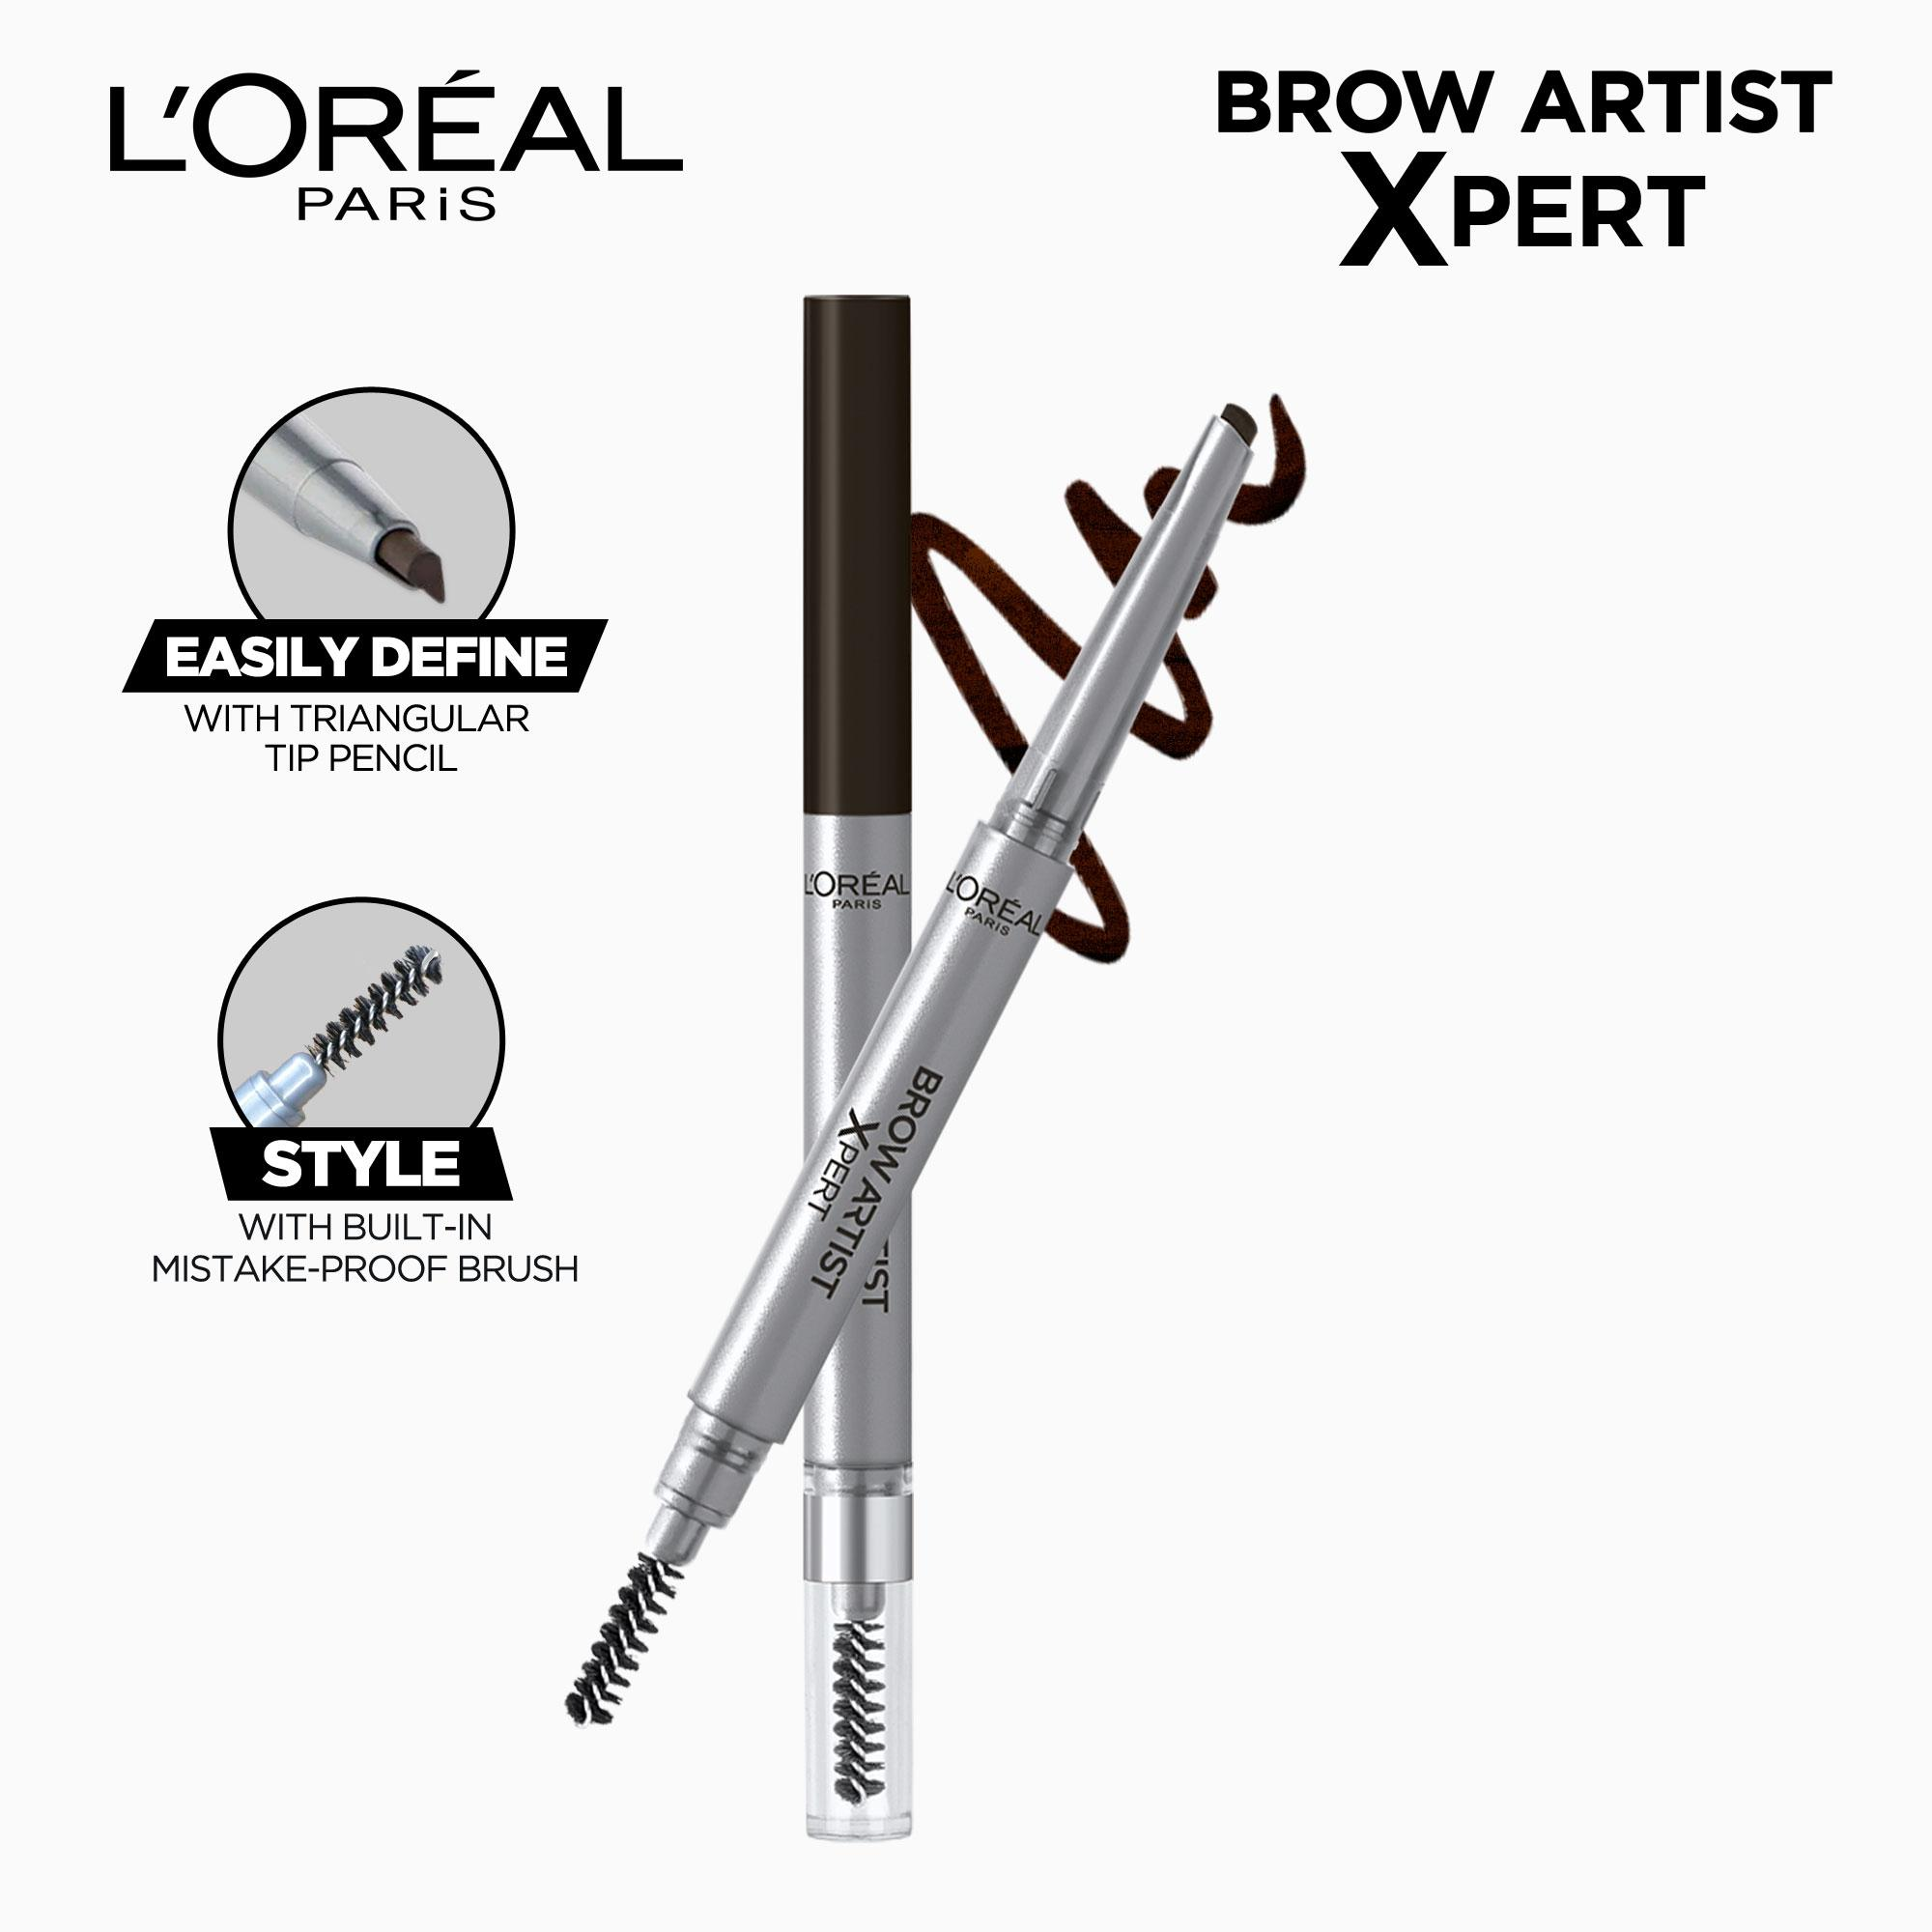 Brow Artist Xpert 2-in-1 Brow Pencil- 109 Ebony by LOréal Paris Brow Artist Philippines